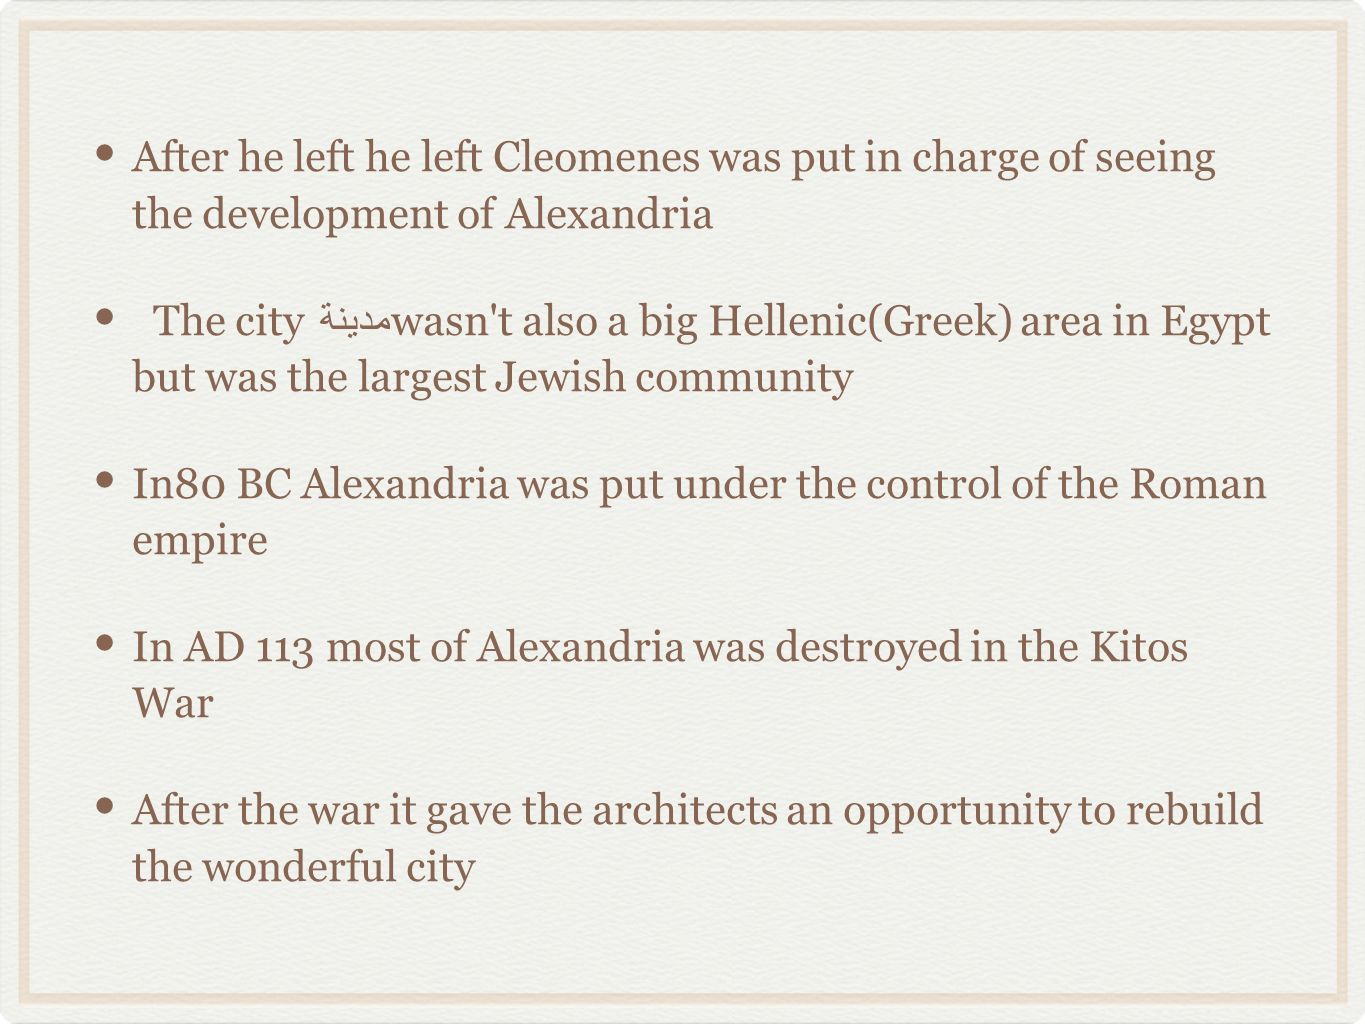 After he left he left Cleomenes was put in charge of seeing the development of Alexandria The city مدينة wasn t also a big Hellenic(Greek) area in Egypt but was the largest Jewish community In80 BC Alexandria was put under the control of the Roman empire In AD 113 most of Alexandria was destroyed in the Kitos War After the war it gave the architects an opportunity to rebuild the wonderful city